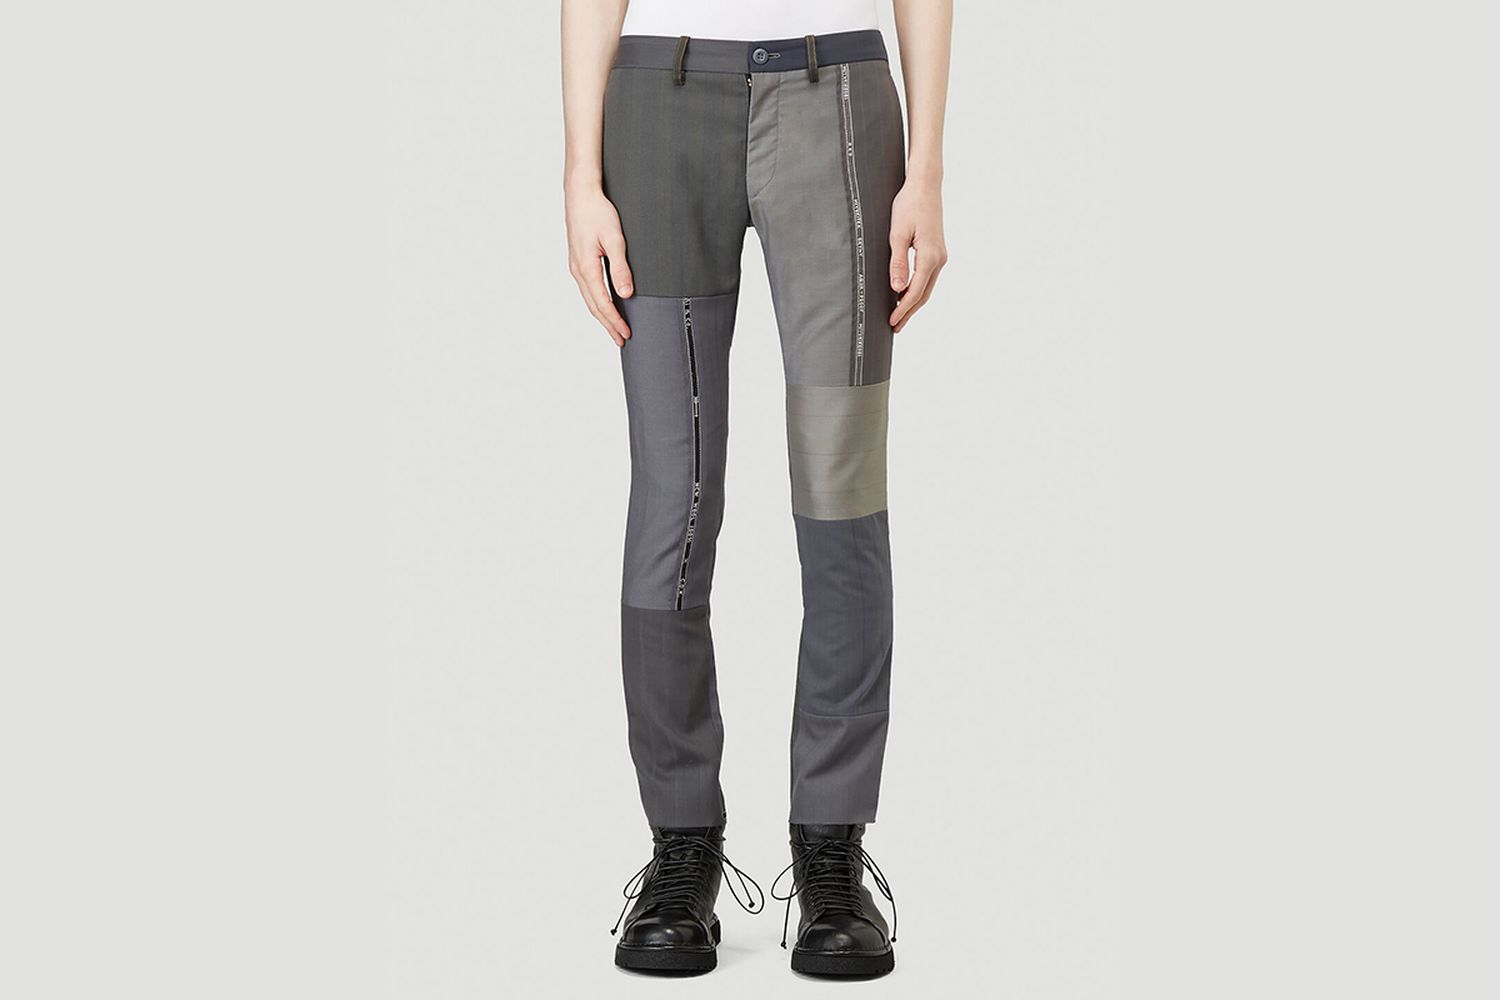 Tailored Patchwork Pants